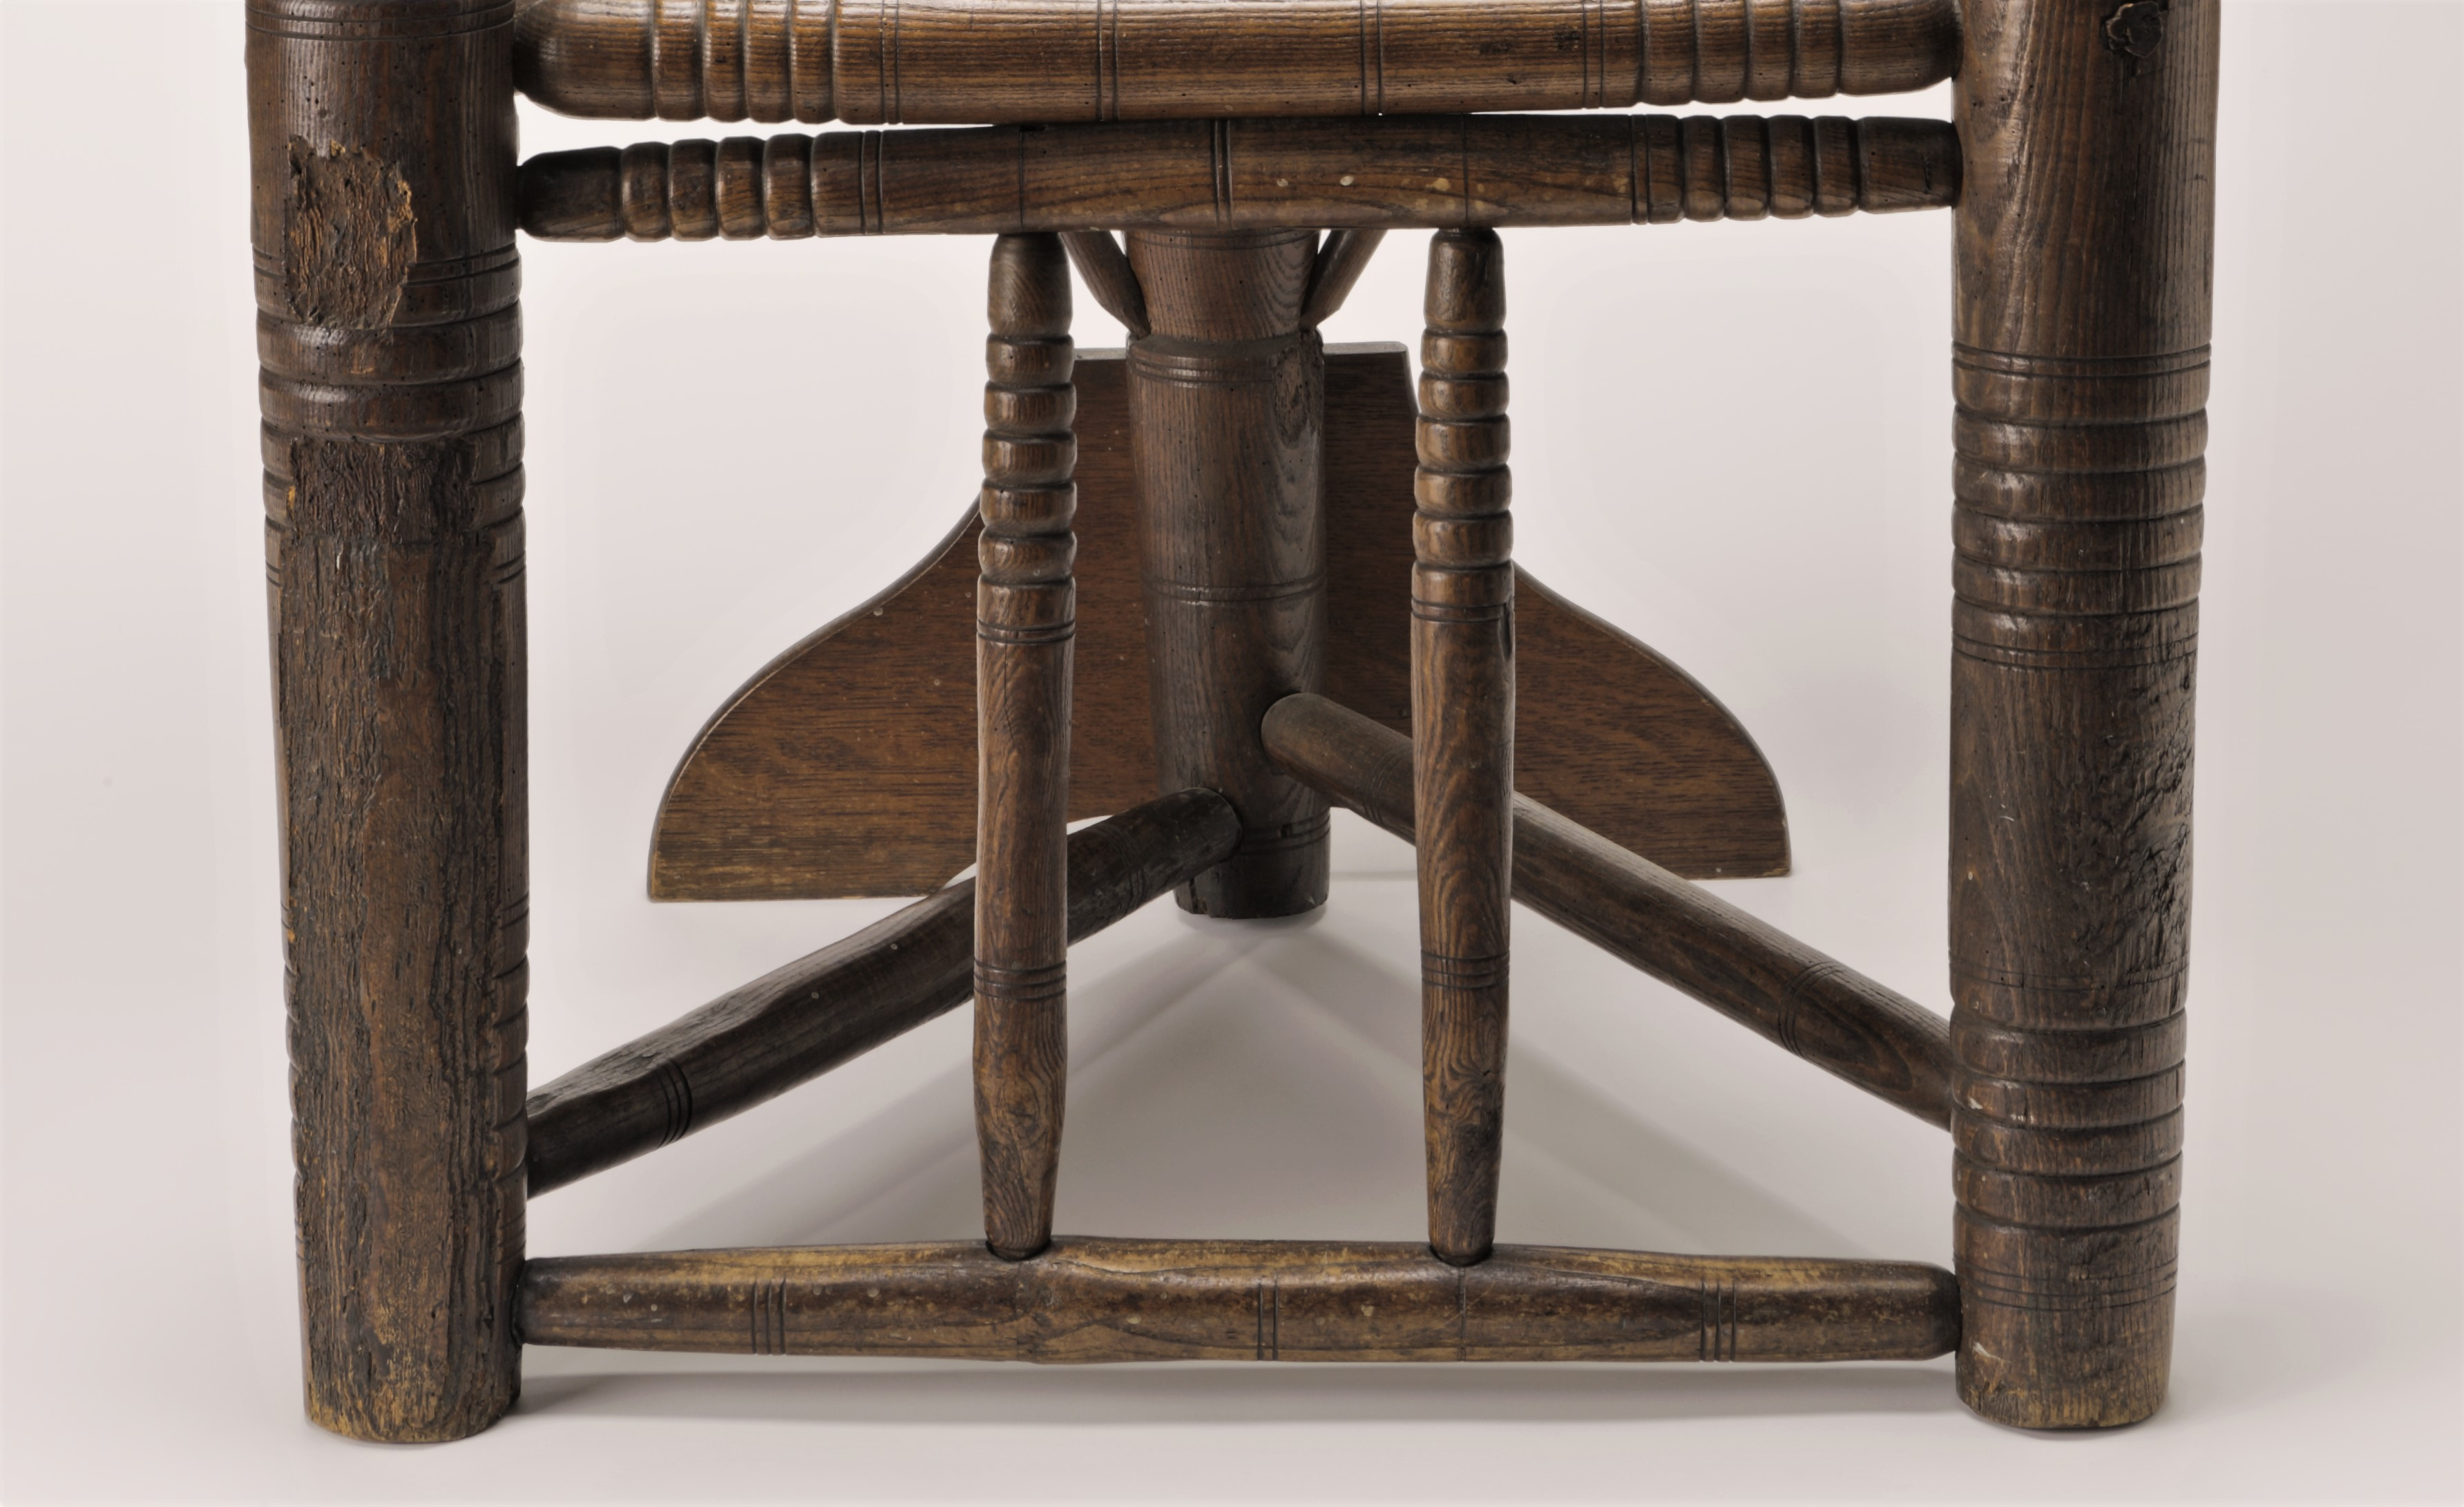 This image shows the bottom half of a wooden three-legged chair. Two thick legs stabilize the chair in front with horizontal lines carved into each at various heights. The leg on the left side of the image shows damage or loss to the surface. A third leg is at the back of the chair. Just above the ground are three spindles, each connecting the legs, forming a triangular shape. Two horizontal spindles decorate the chair inside and are parallel to the two front legs.